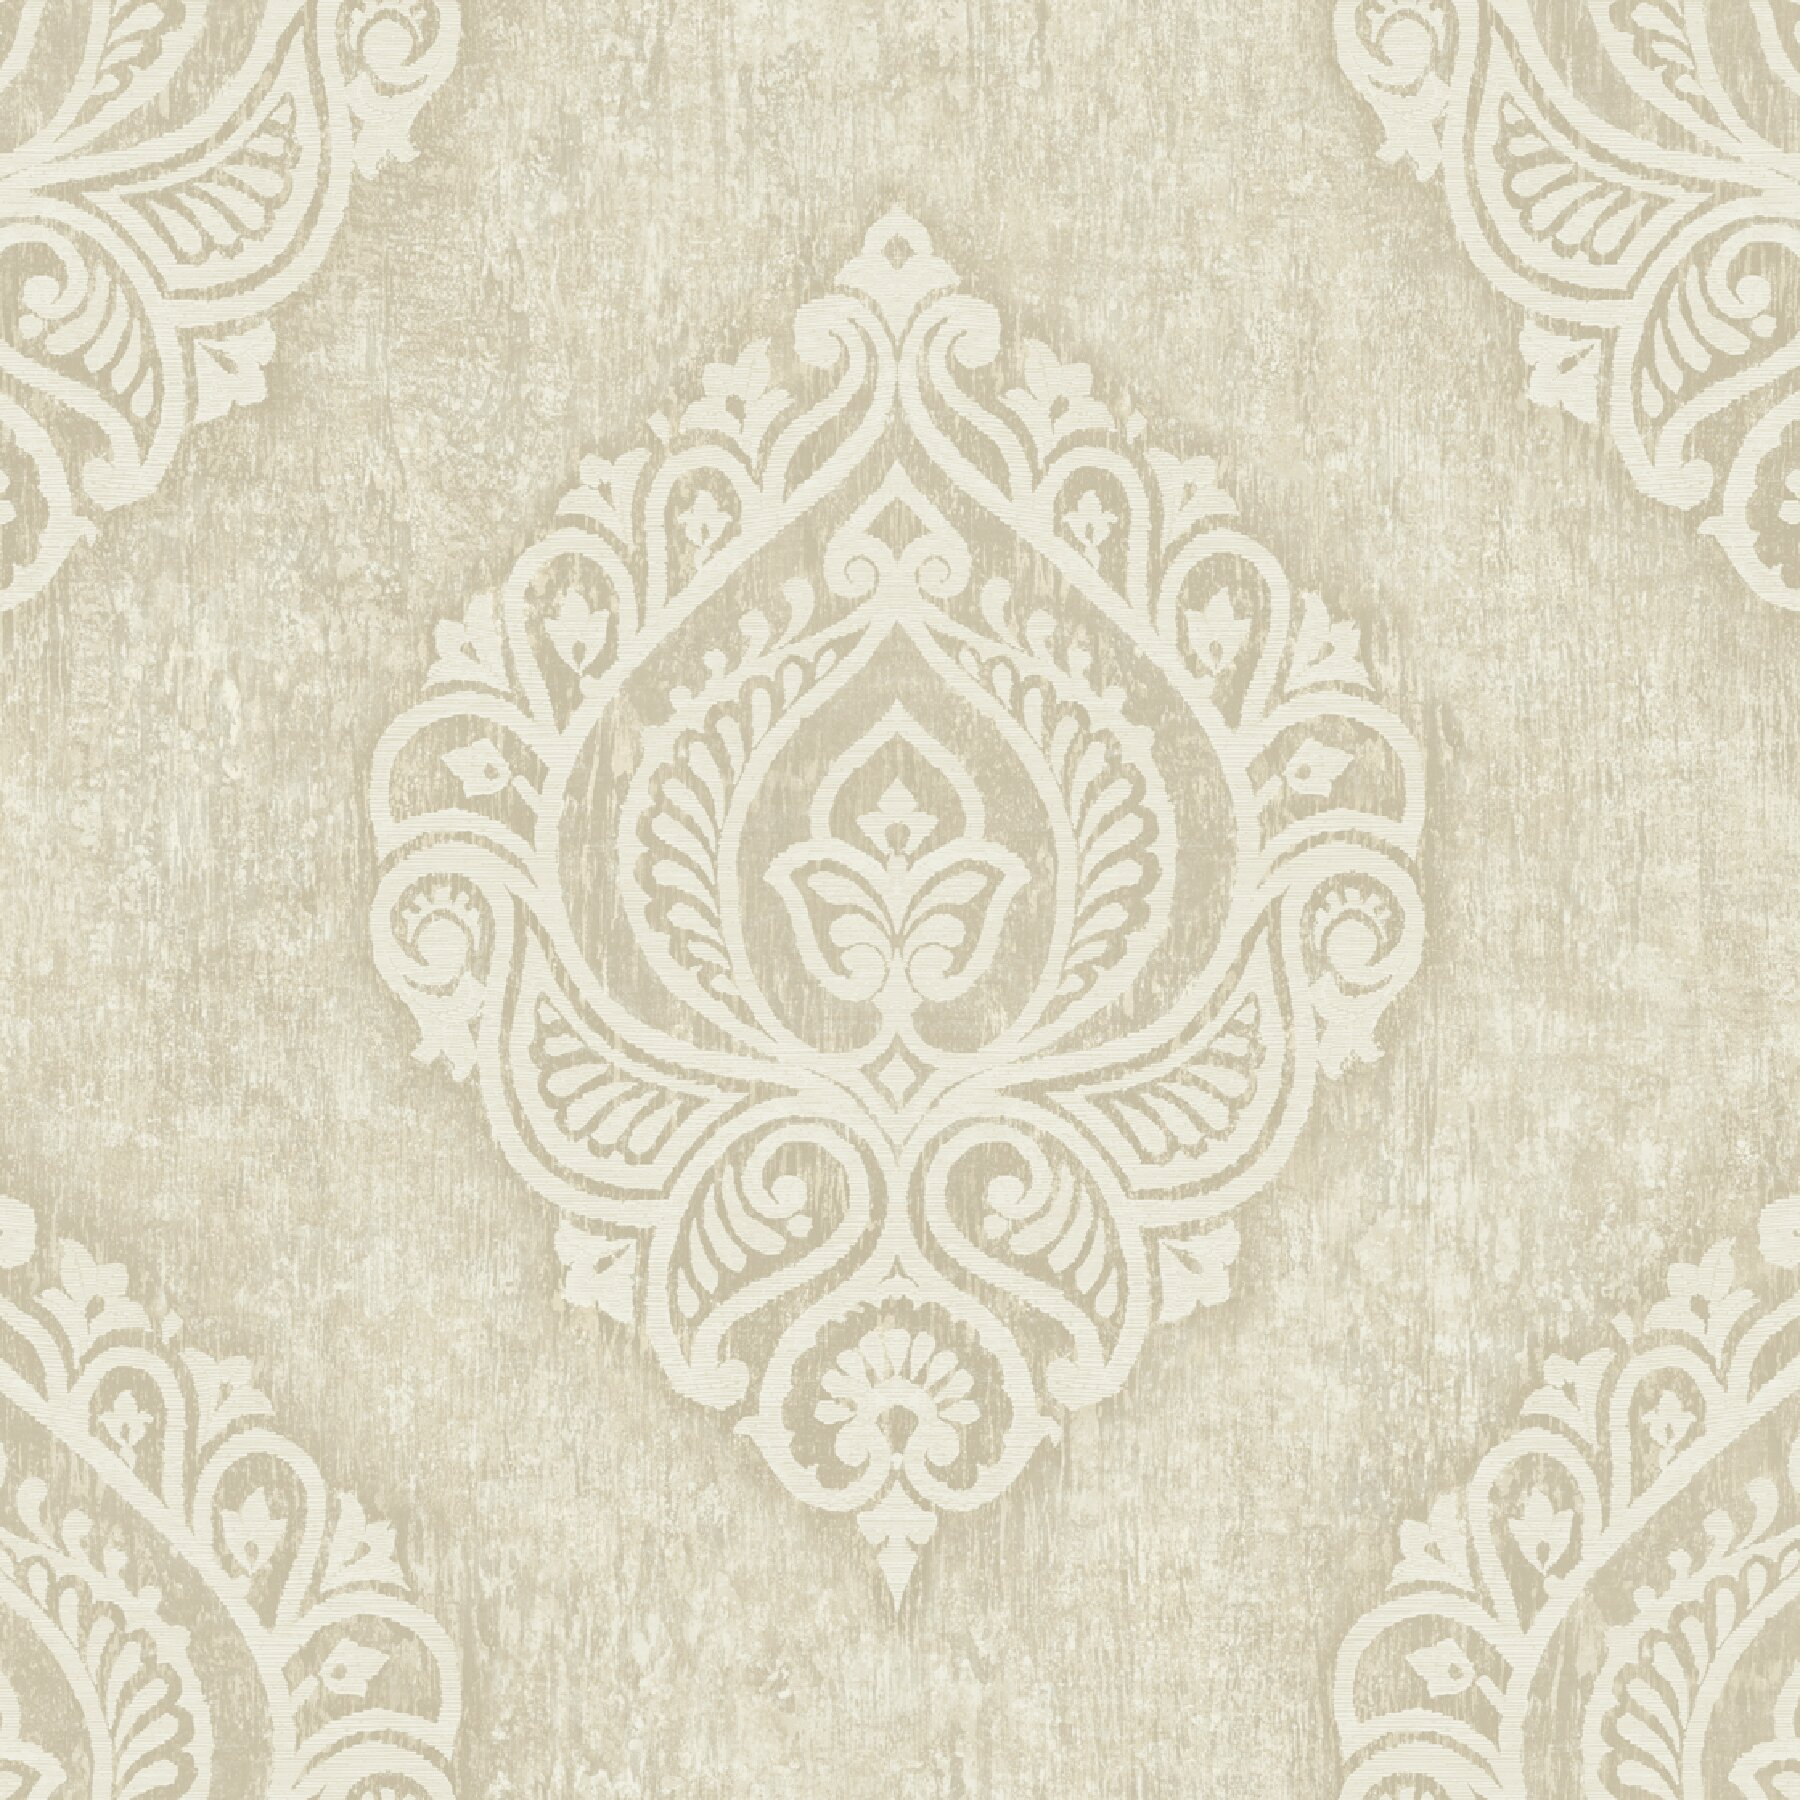 Brewster home fashions pompei theodor 33 39 x 20 5 damask for 3d embossed wallpaper